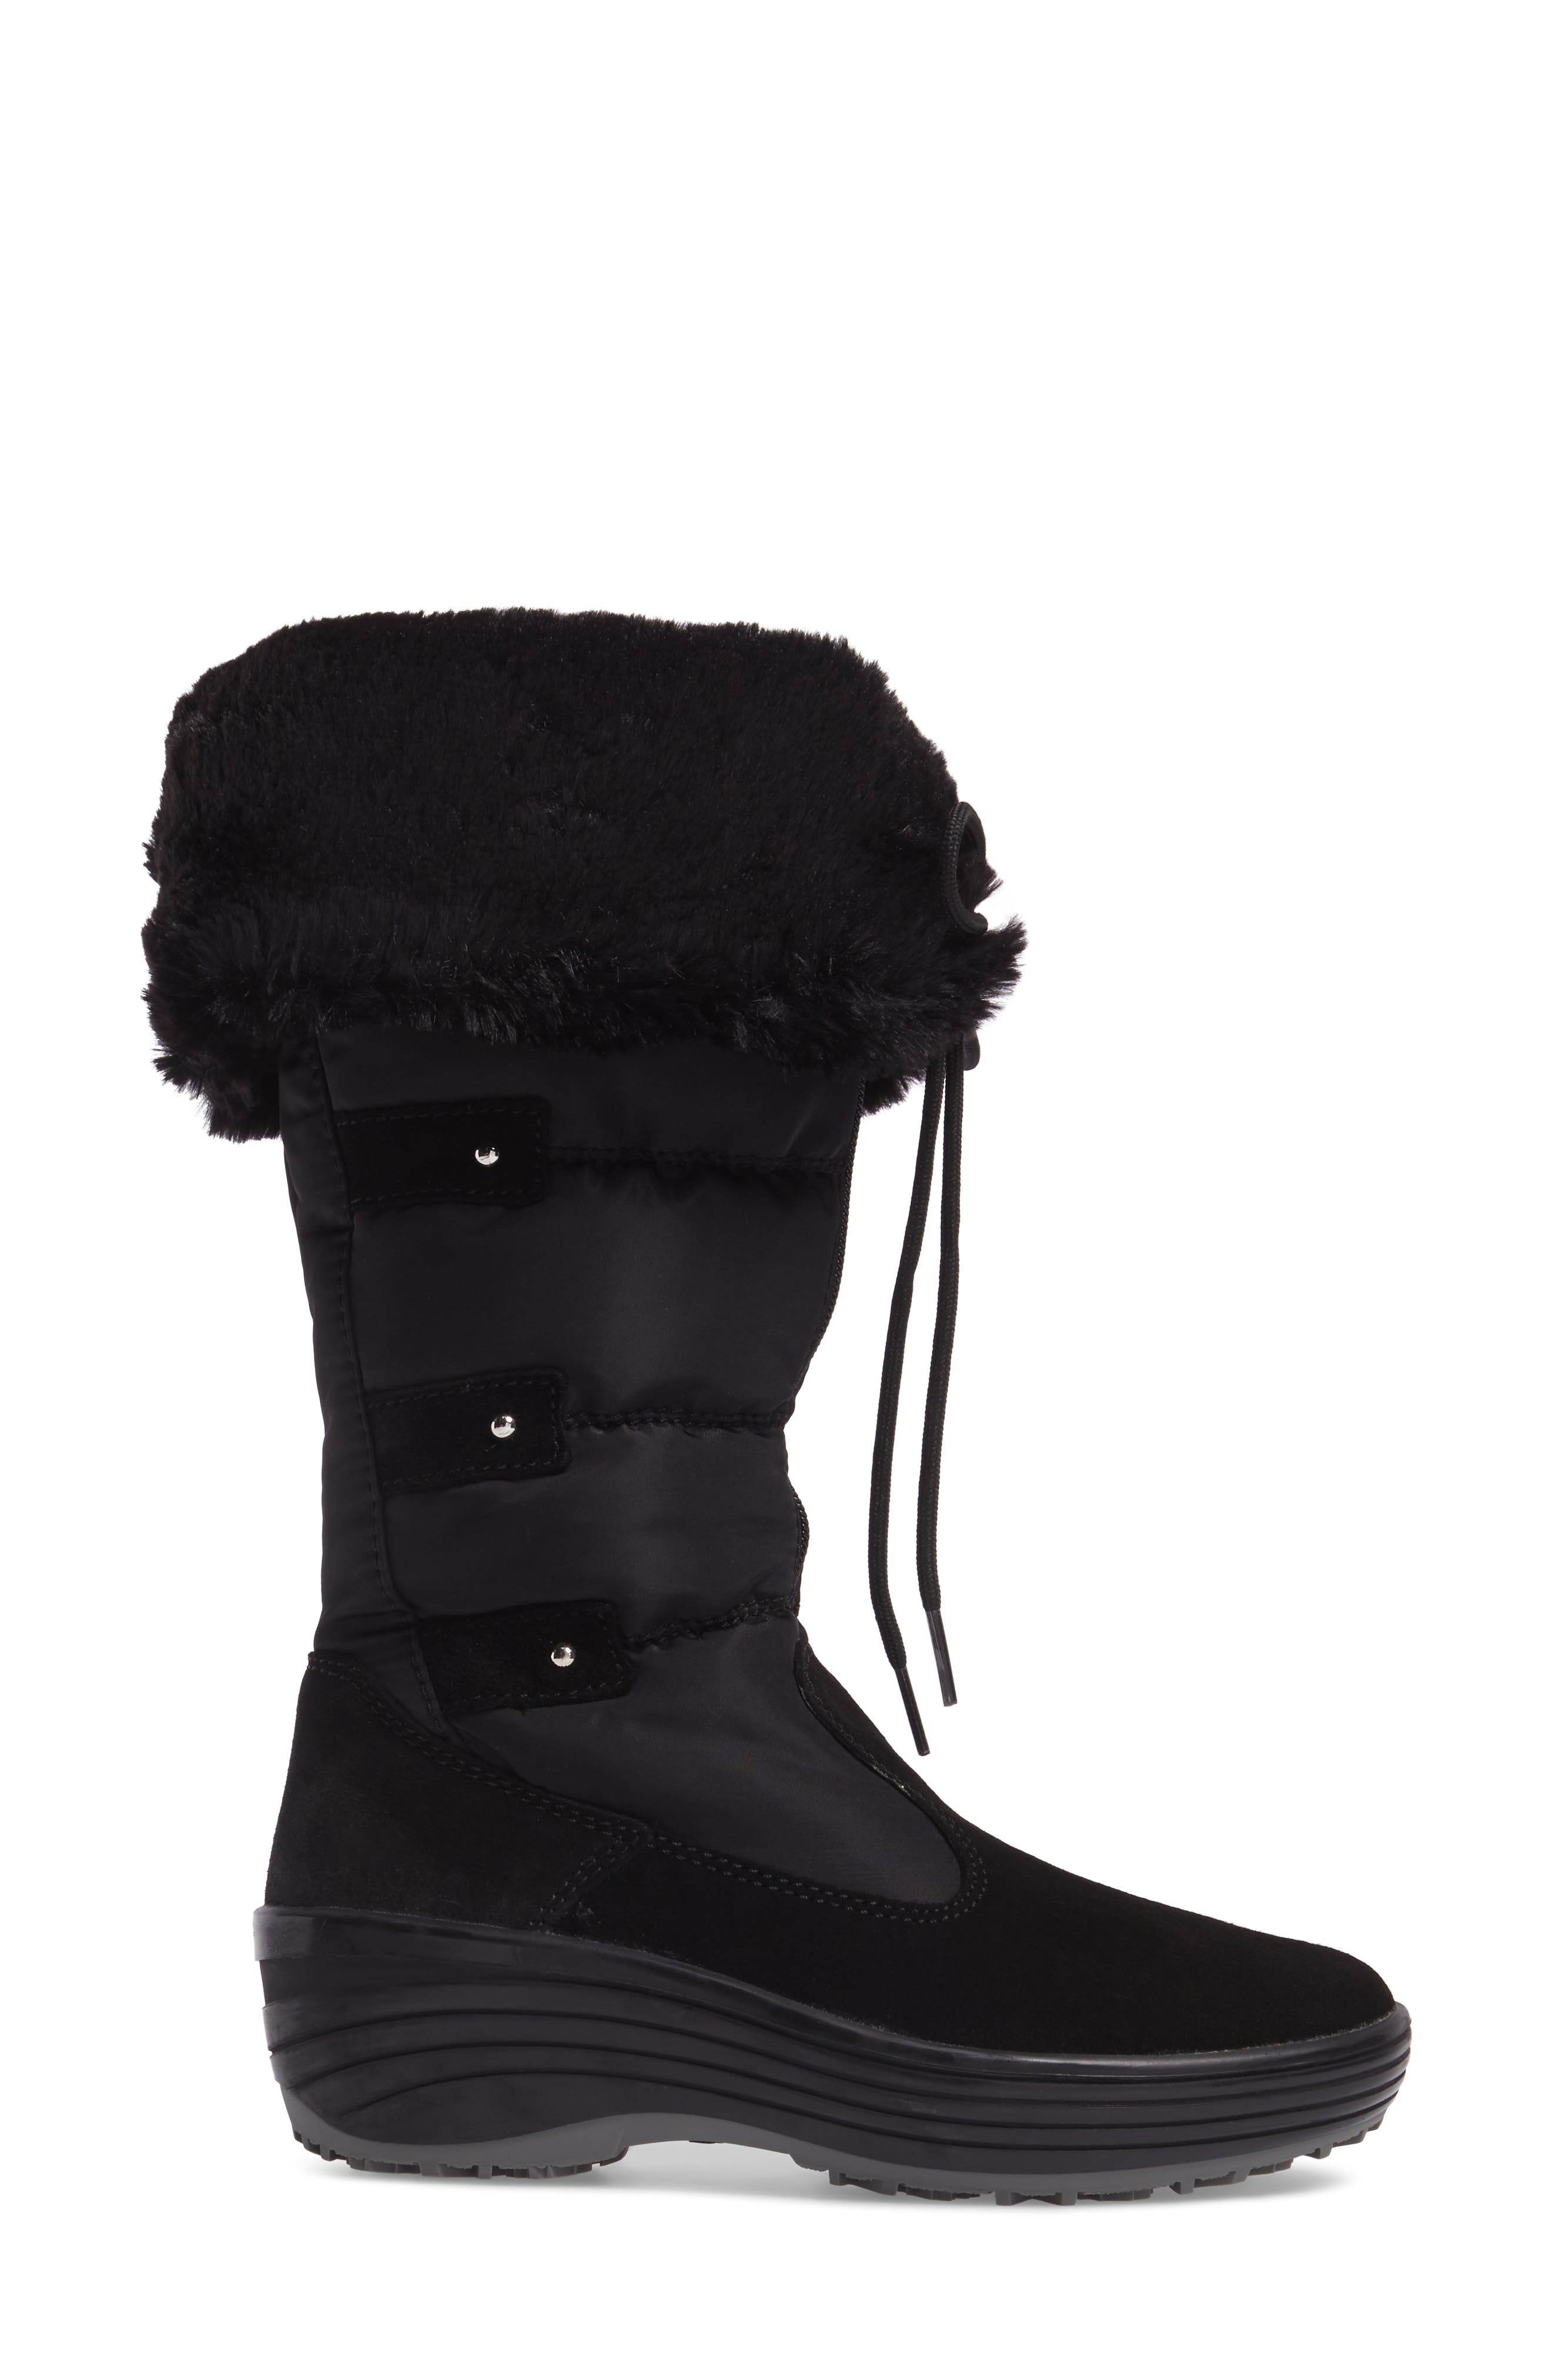 Mia Waterproof Boot with Faux Fur Trim,                             Alternate thumbnail 3, color,                             Black Suede